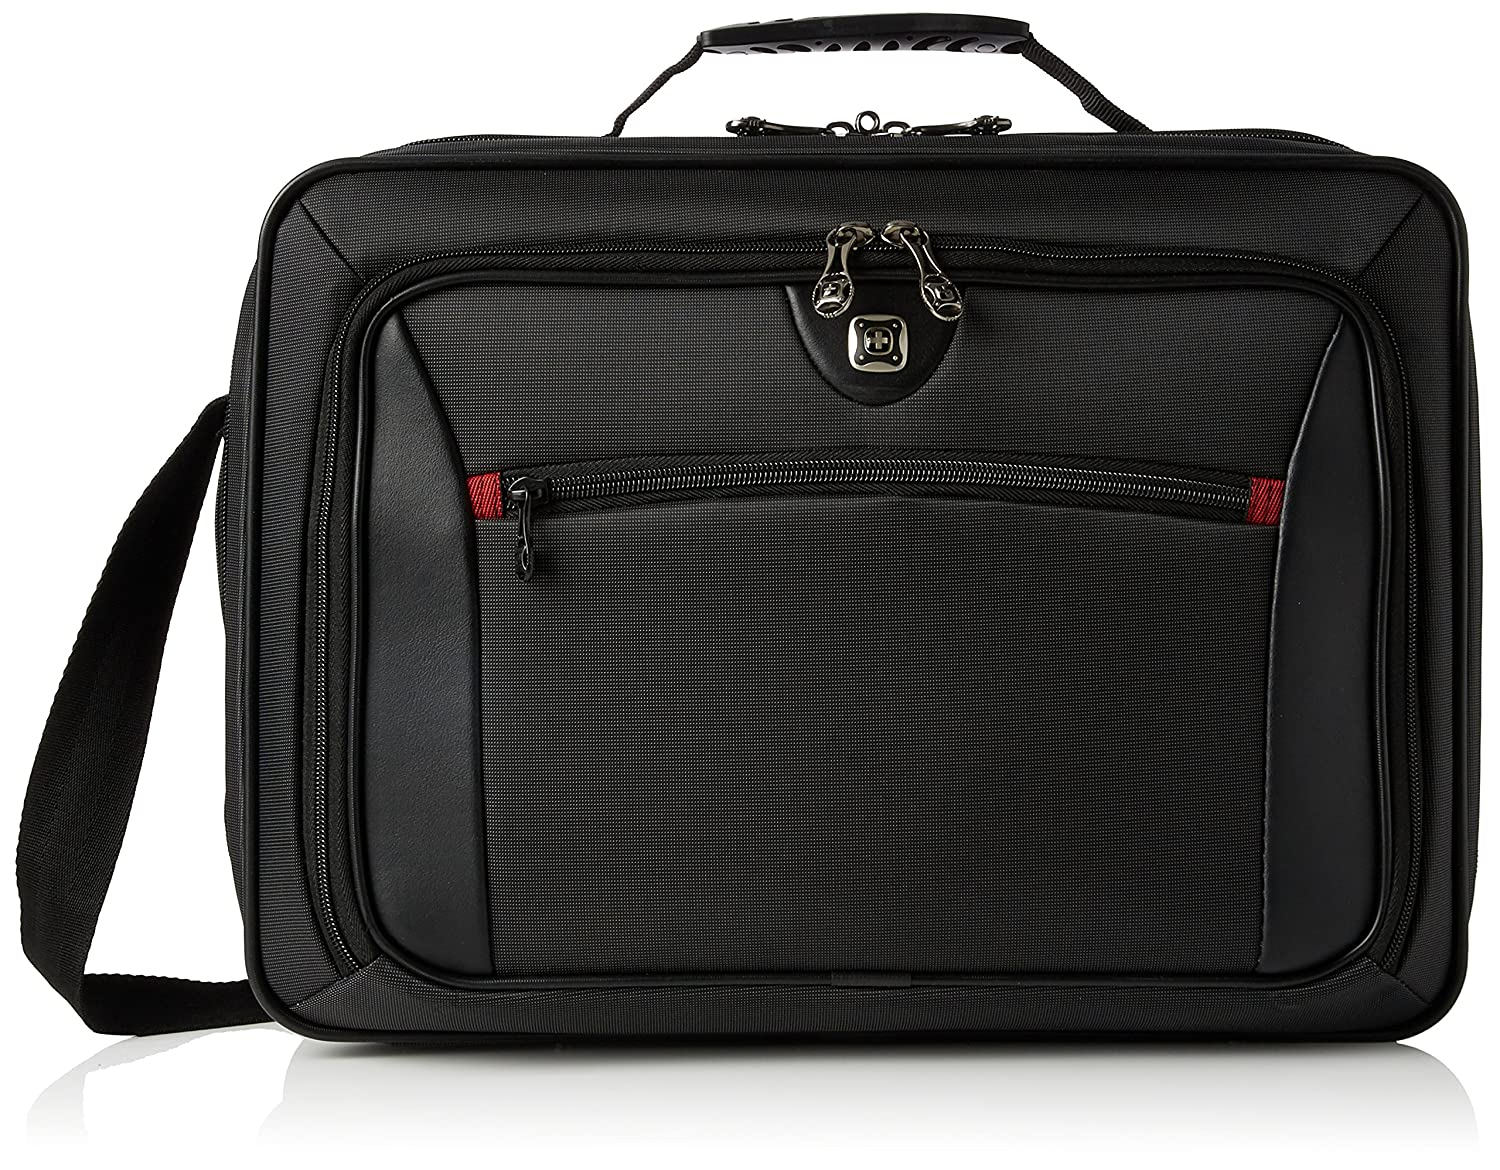 9710183b5 Amazon.com: Wenger SwissGear The Insight 16-Inch Laptop Case - Black:  Electronics